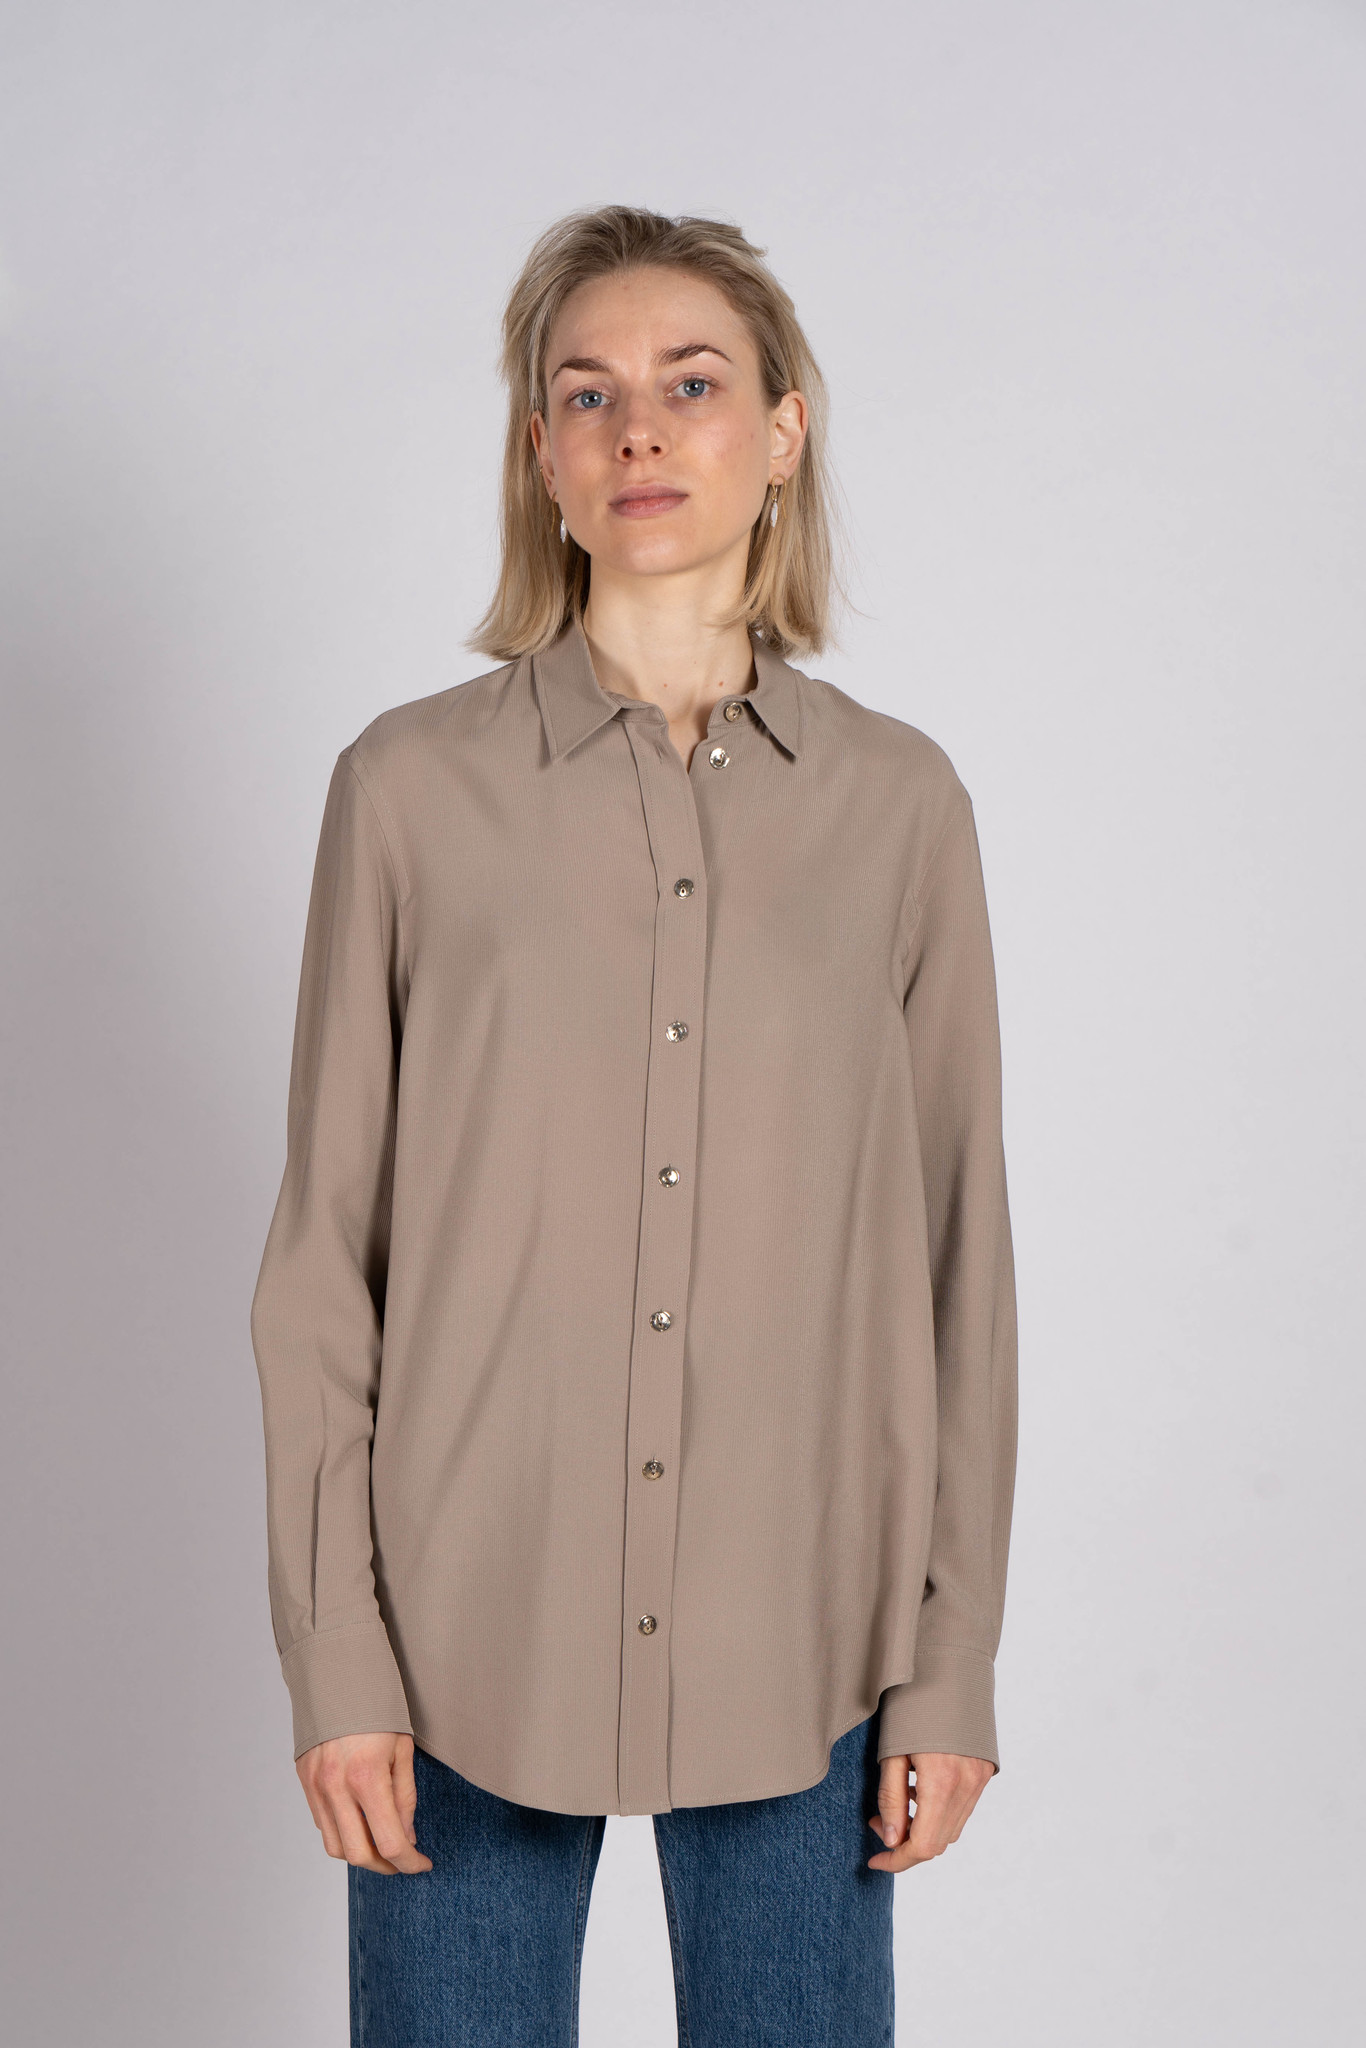 New Garcon silk rib shirt quartz